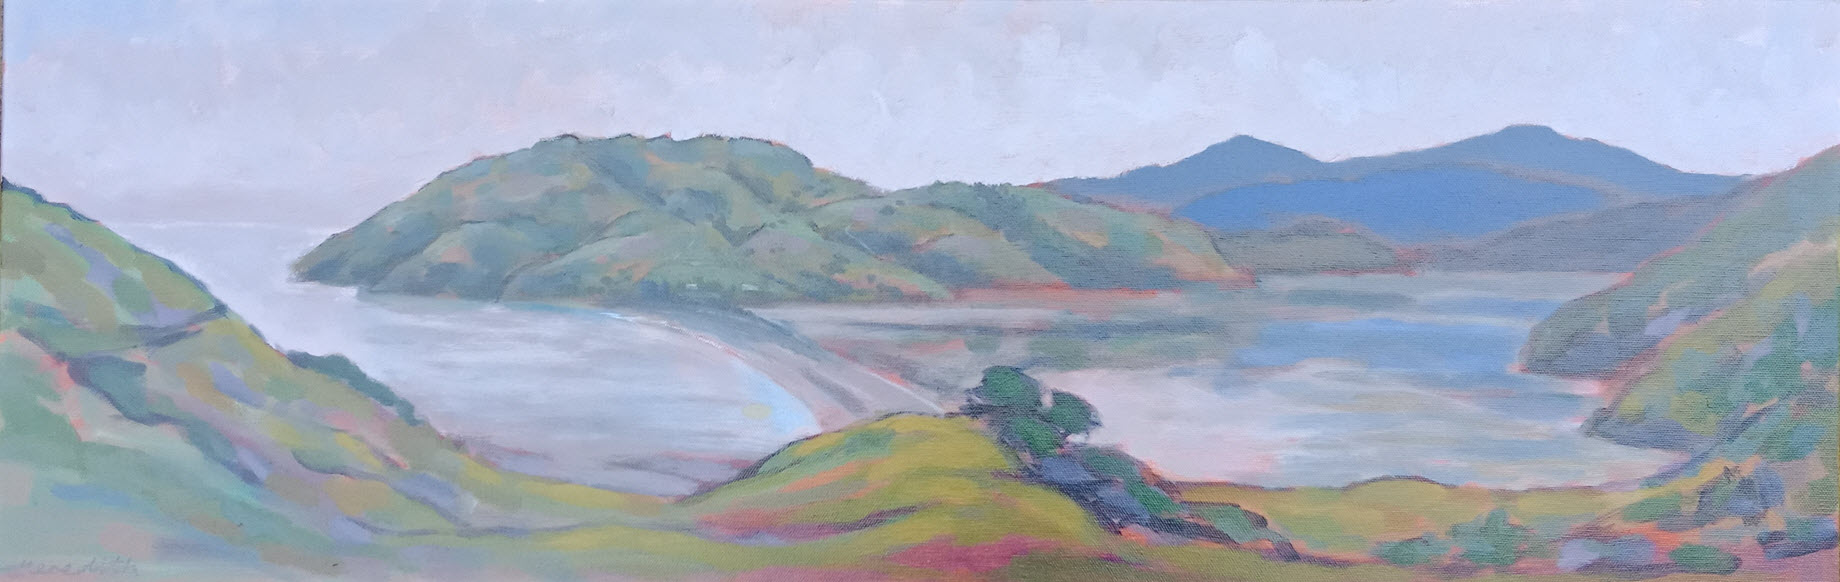 Pepin Island from the Mainland, Nelson  (2017). 310 mm x 920 mm. Acrylic. Available  as a card  (#14).